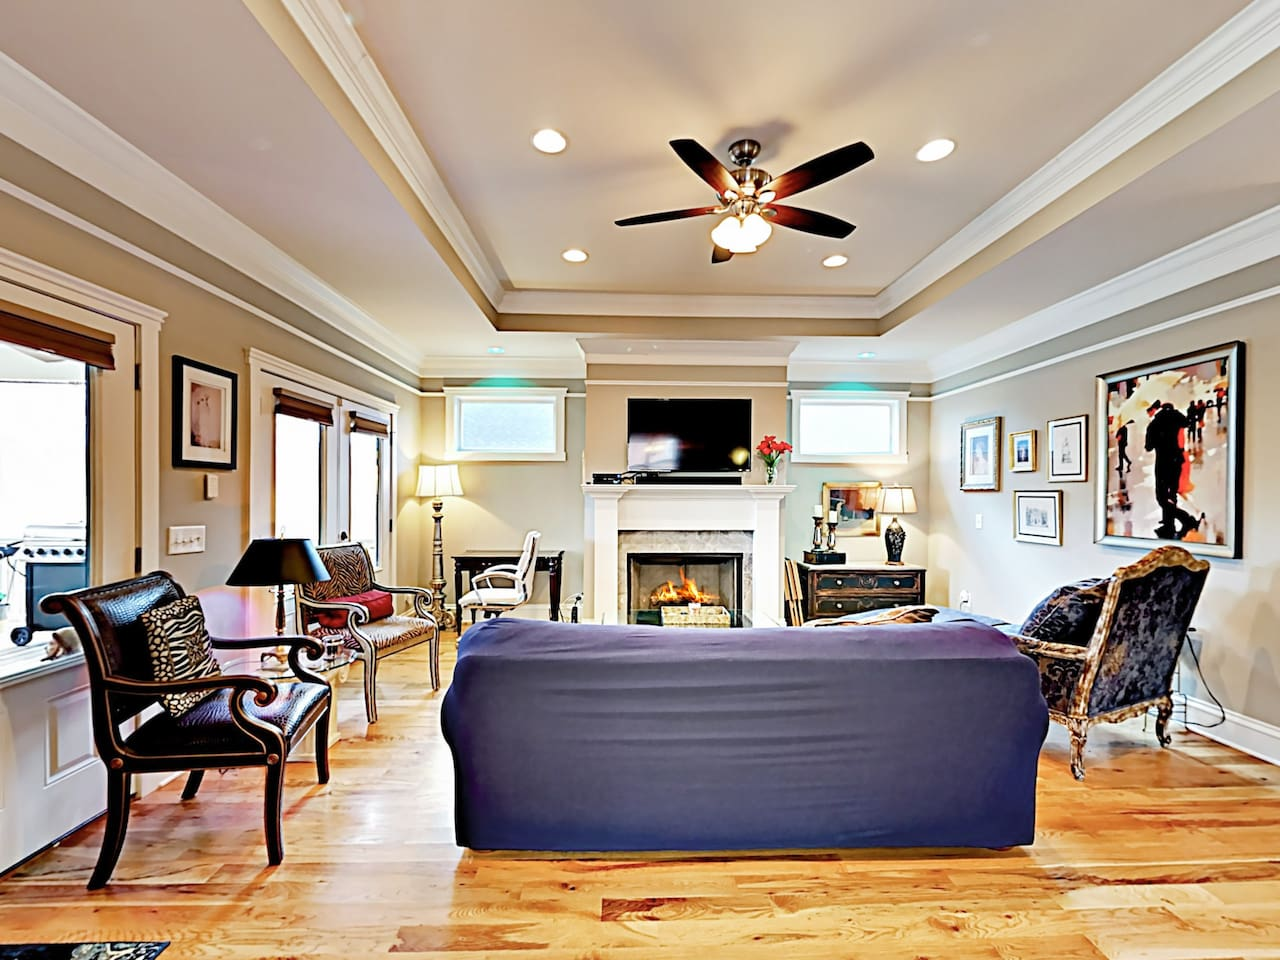 The living room offers comfortable seating for pre-dinner drinks or unwinding with a movie.